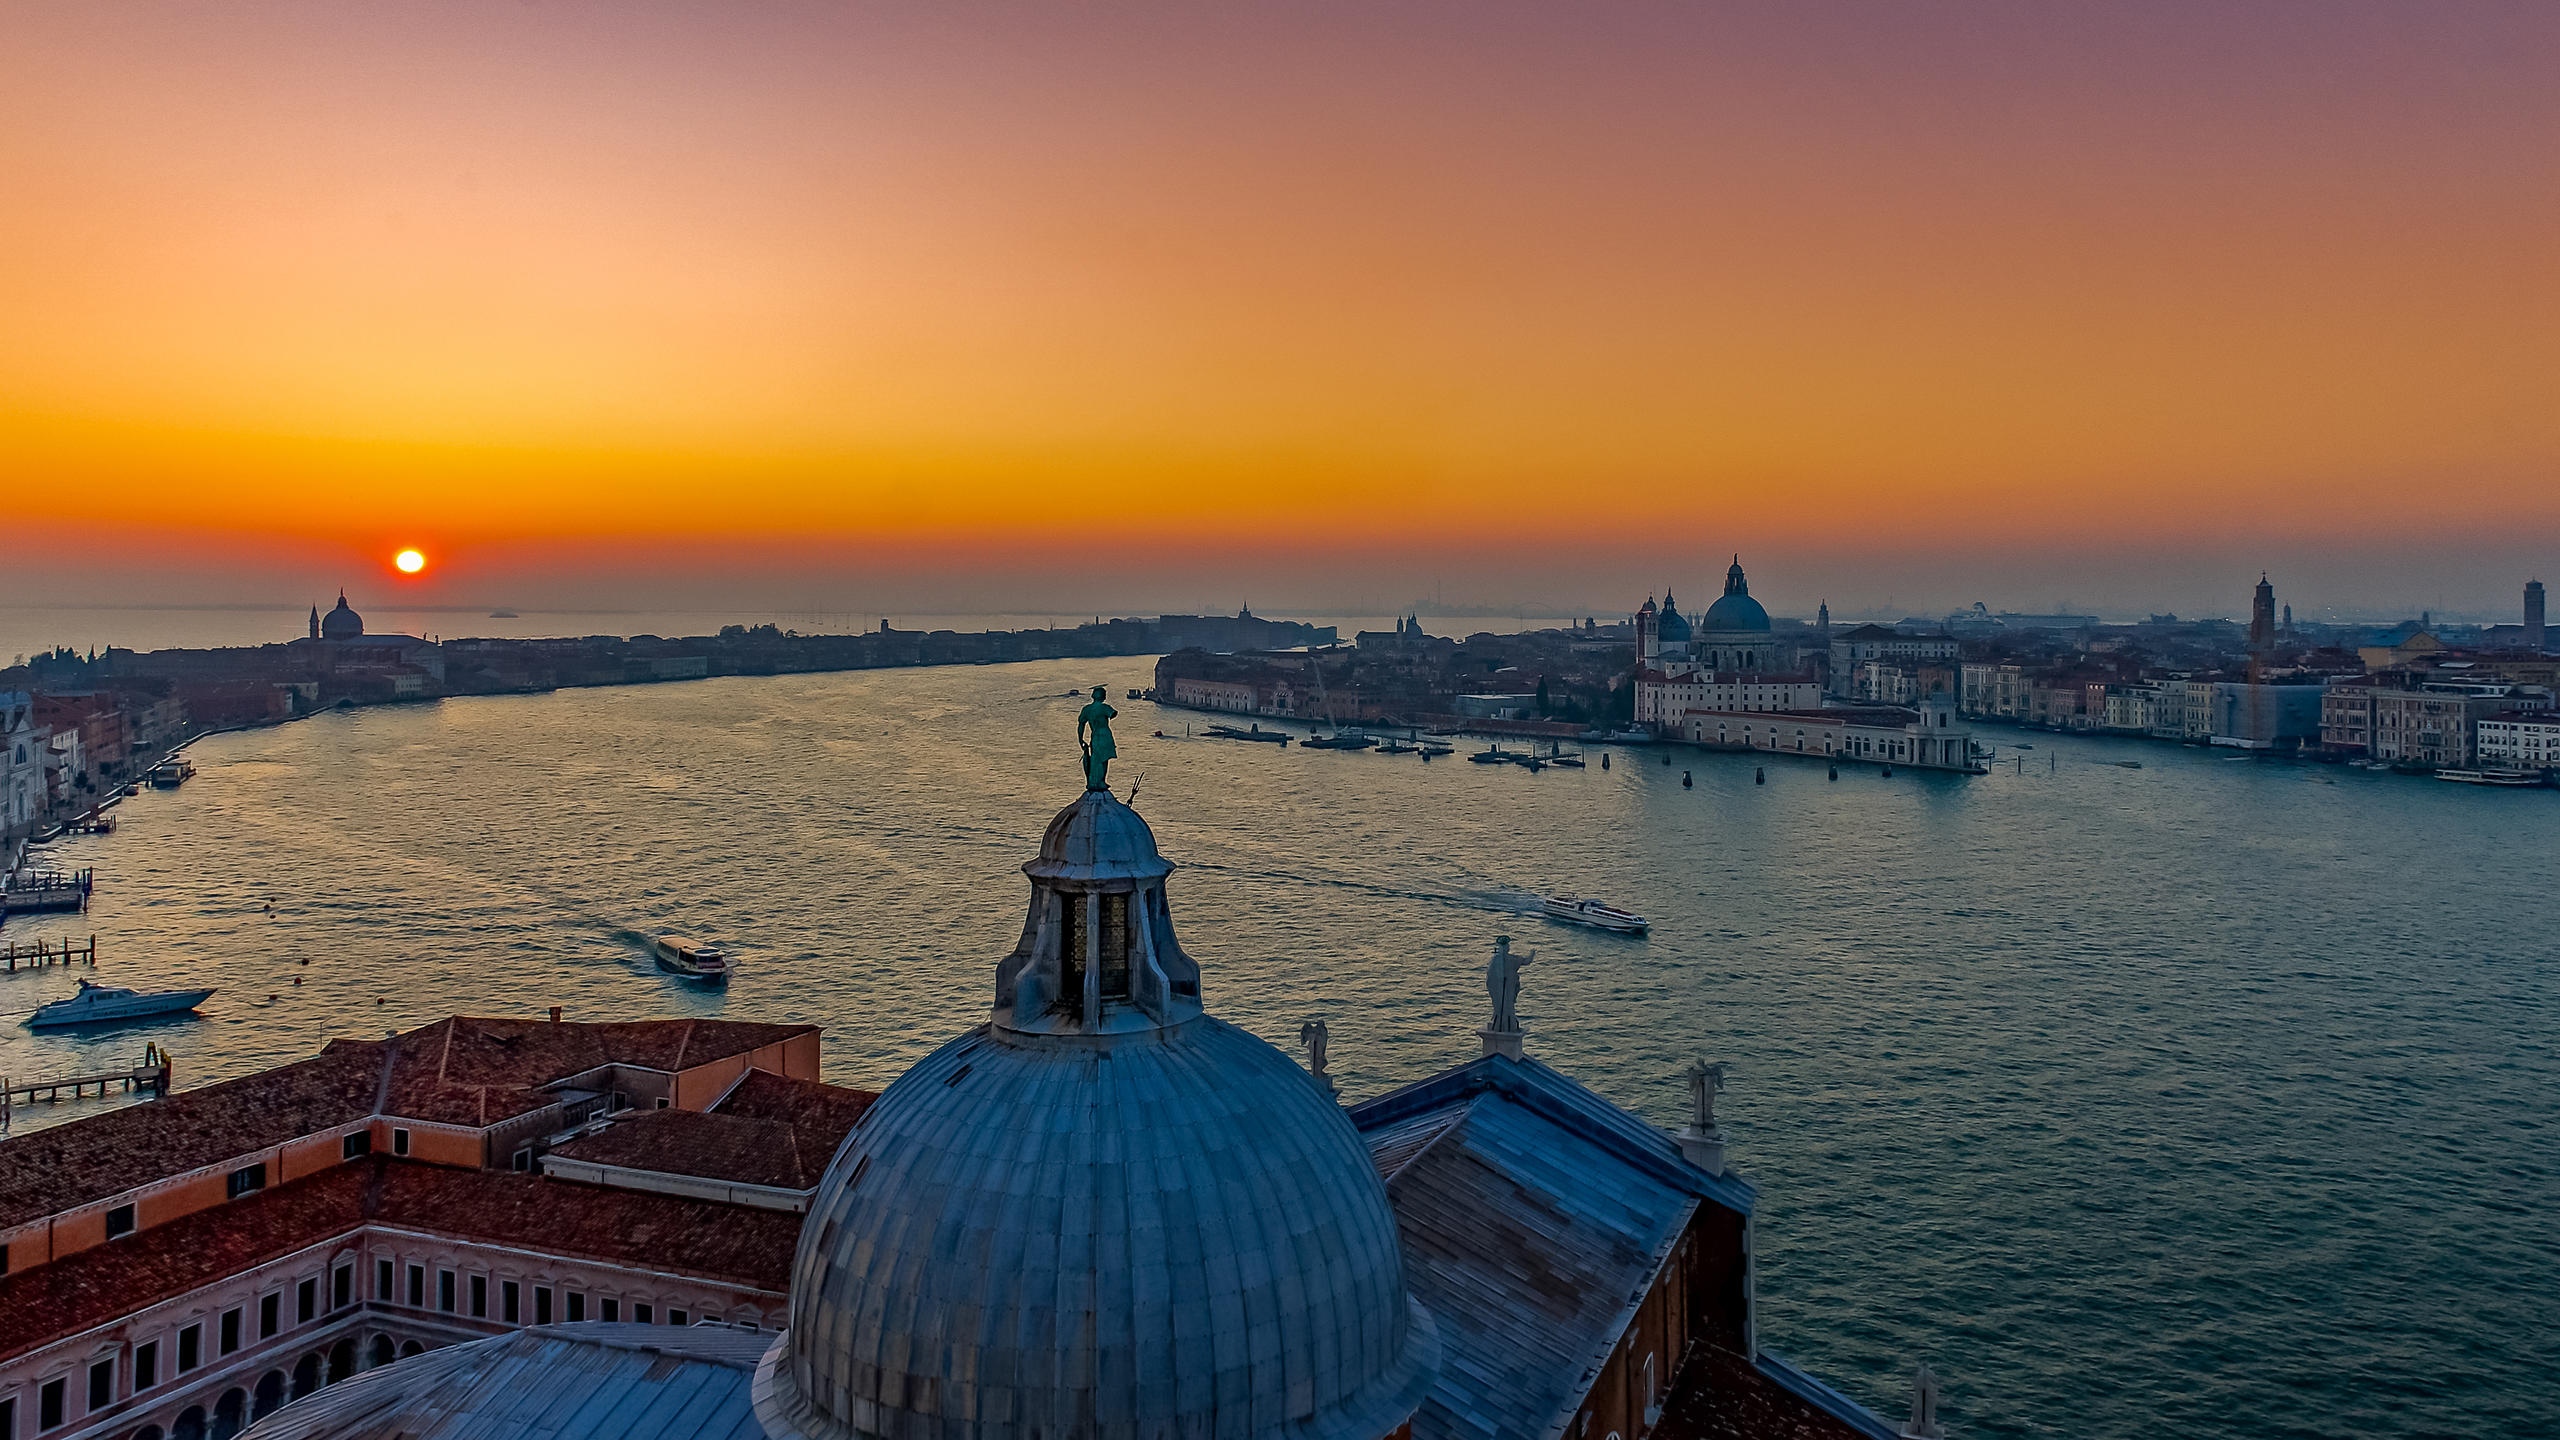 View From the Chiesa Del Redentore, Giudecca at Sunset with Water Taxis in the Grand Canal, Venice